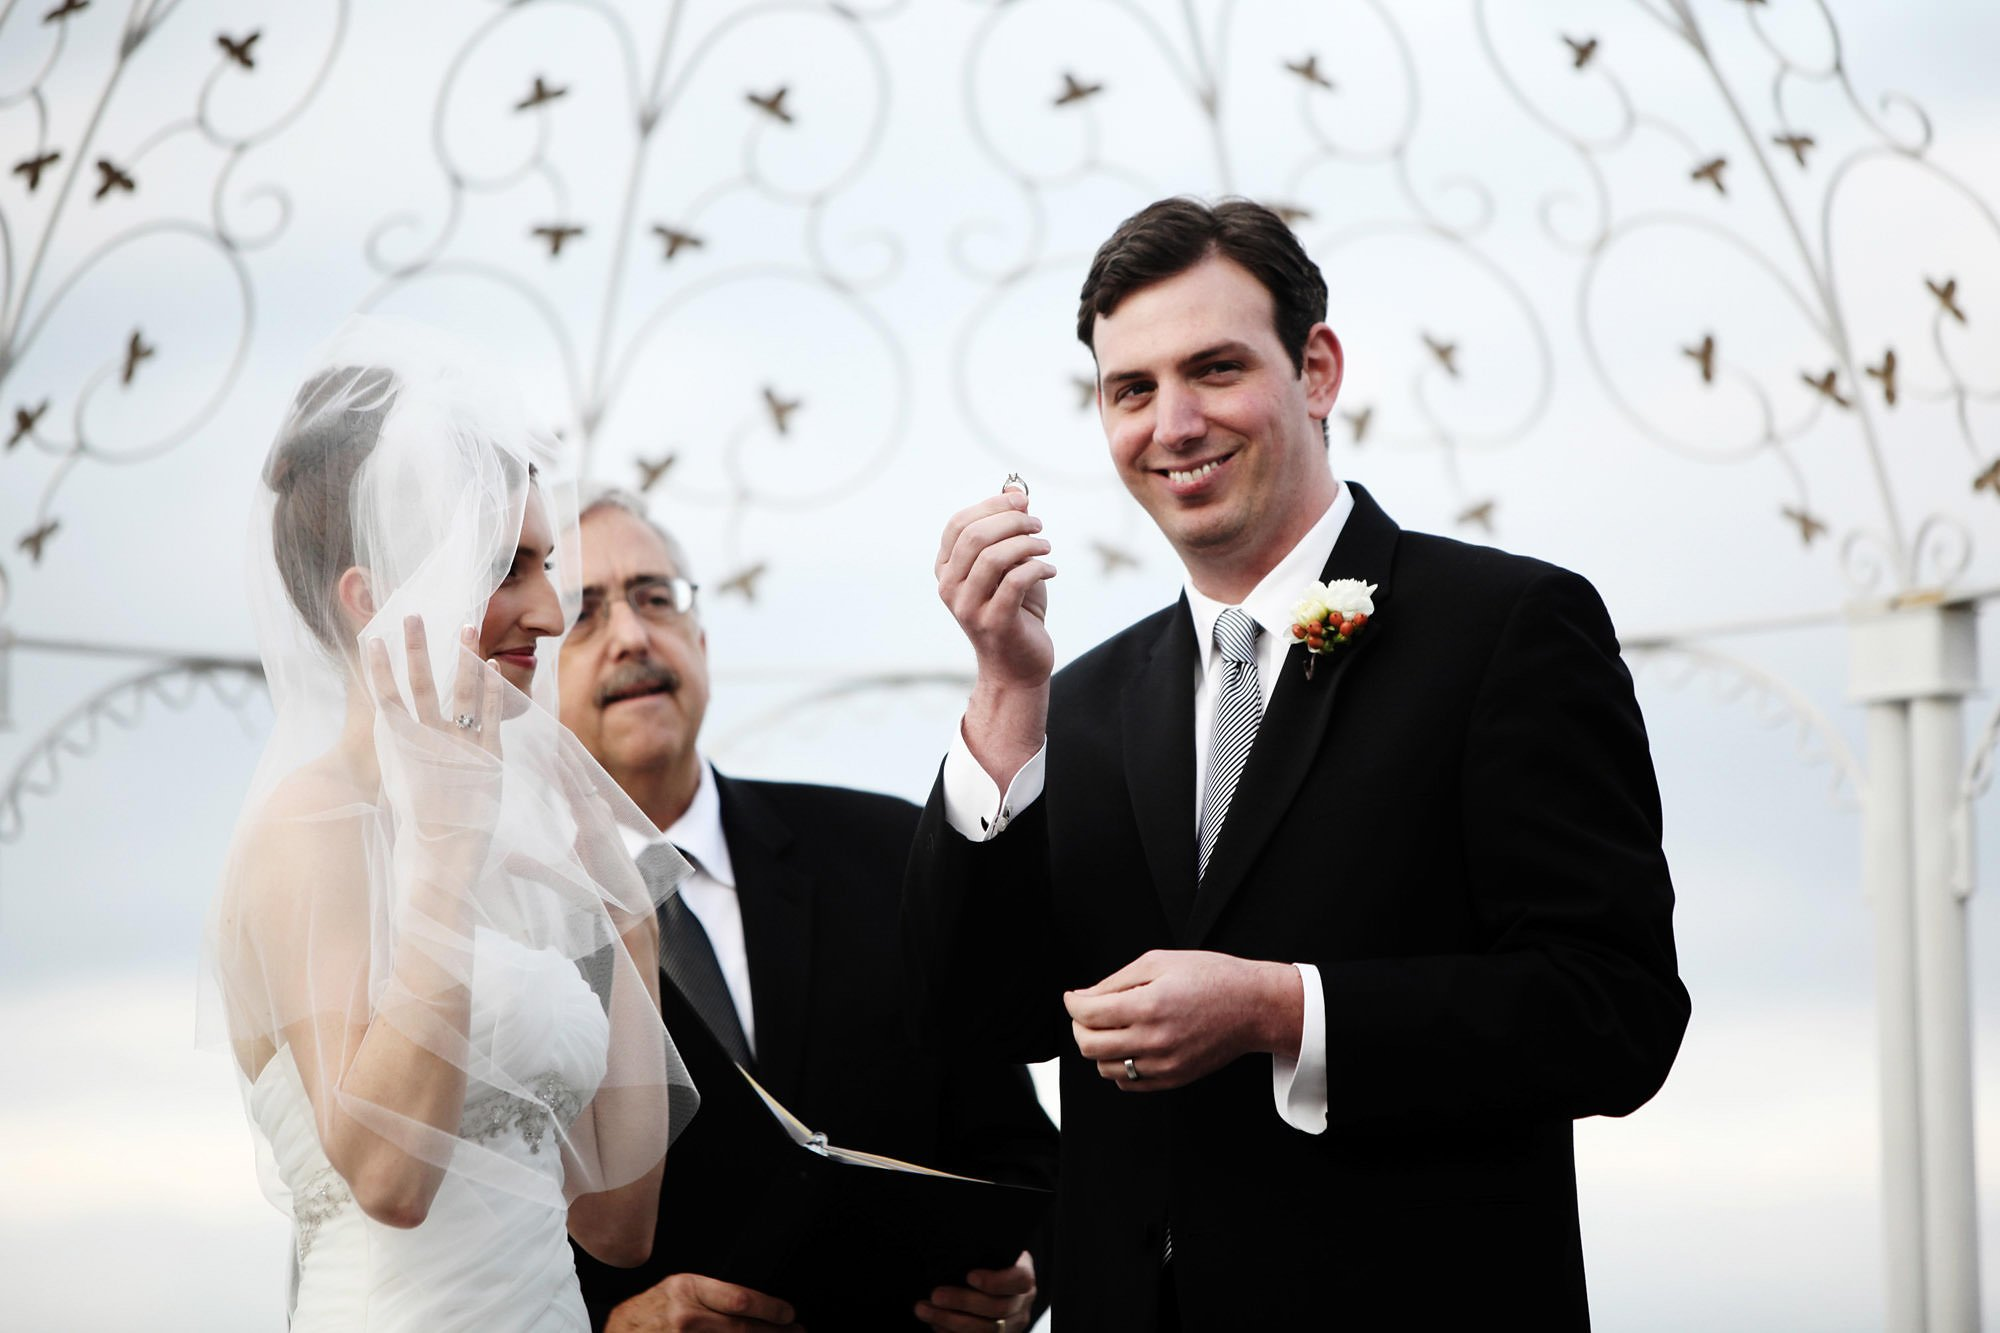 The groom holds up the wedding ring during the Celebrations at the Bay wedding ceremony.